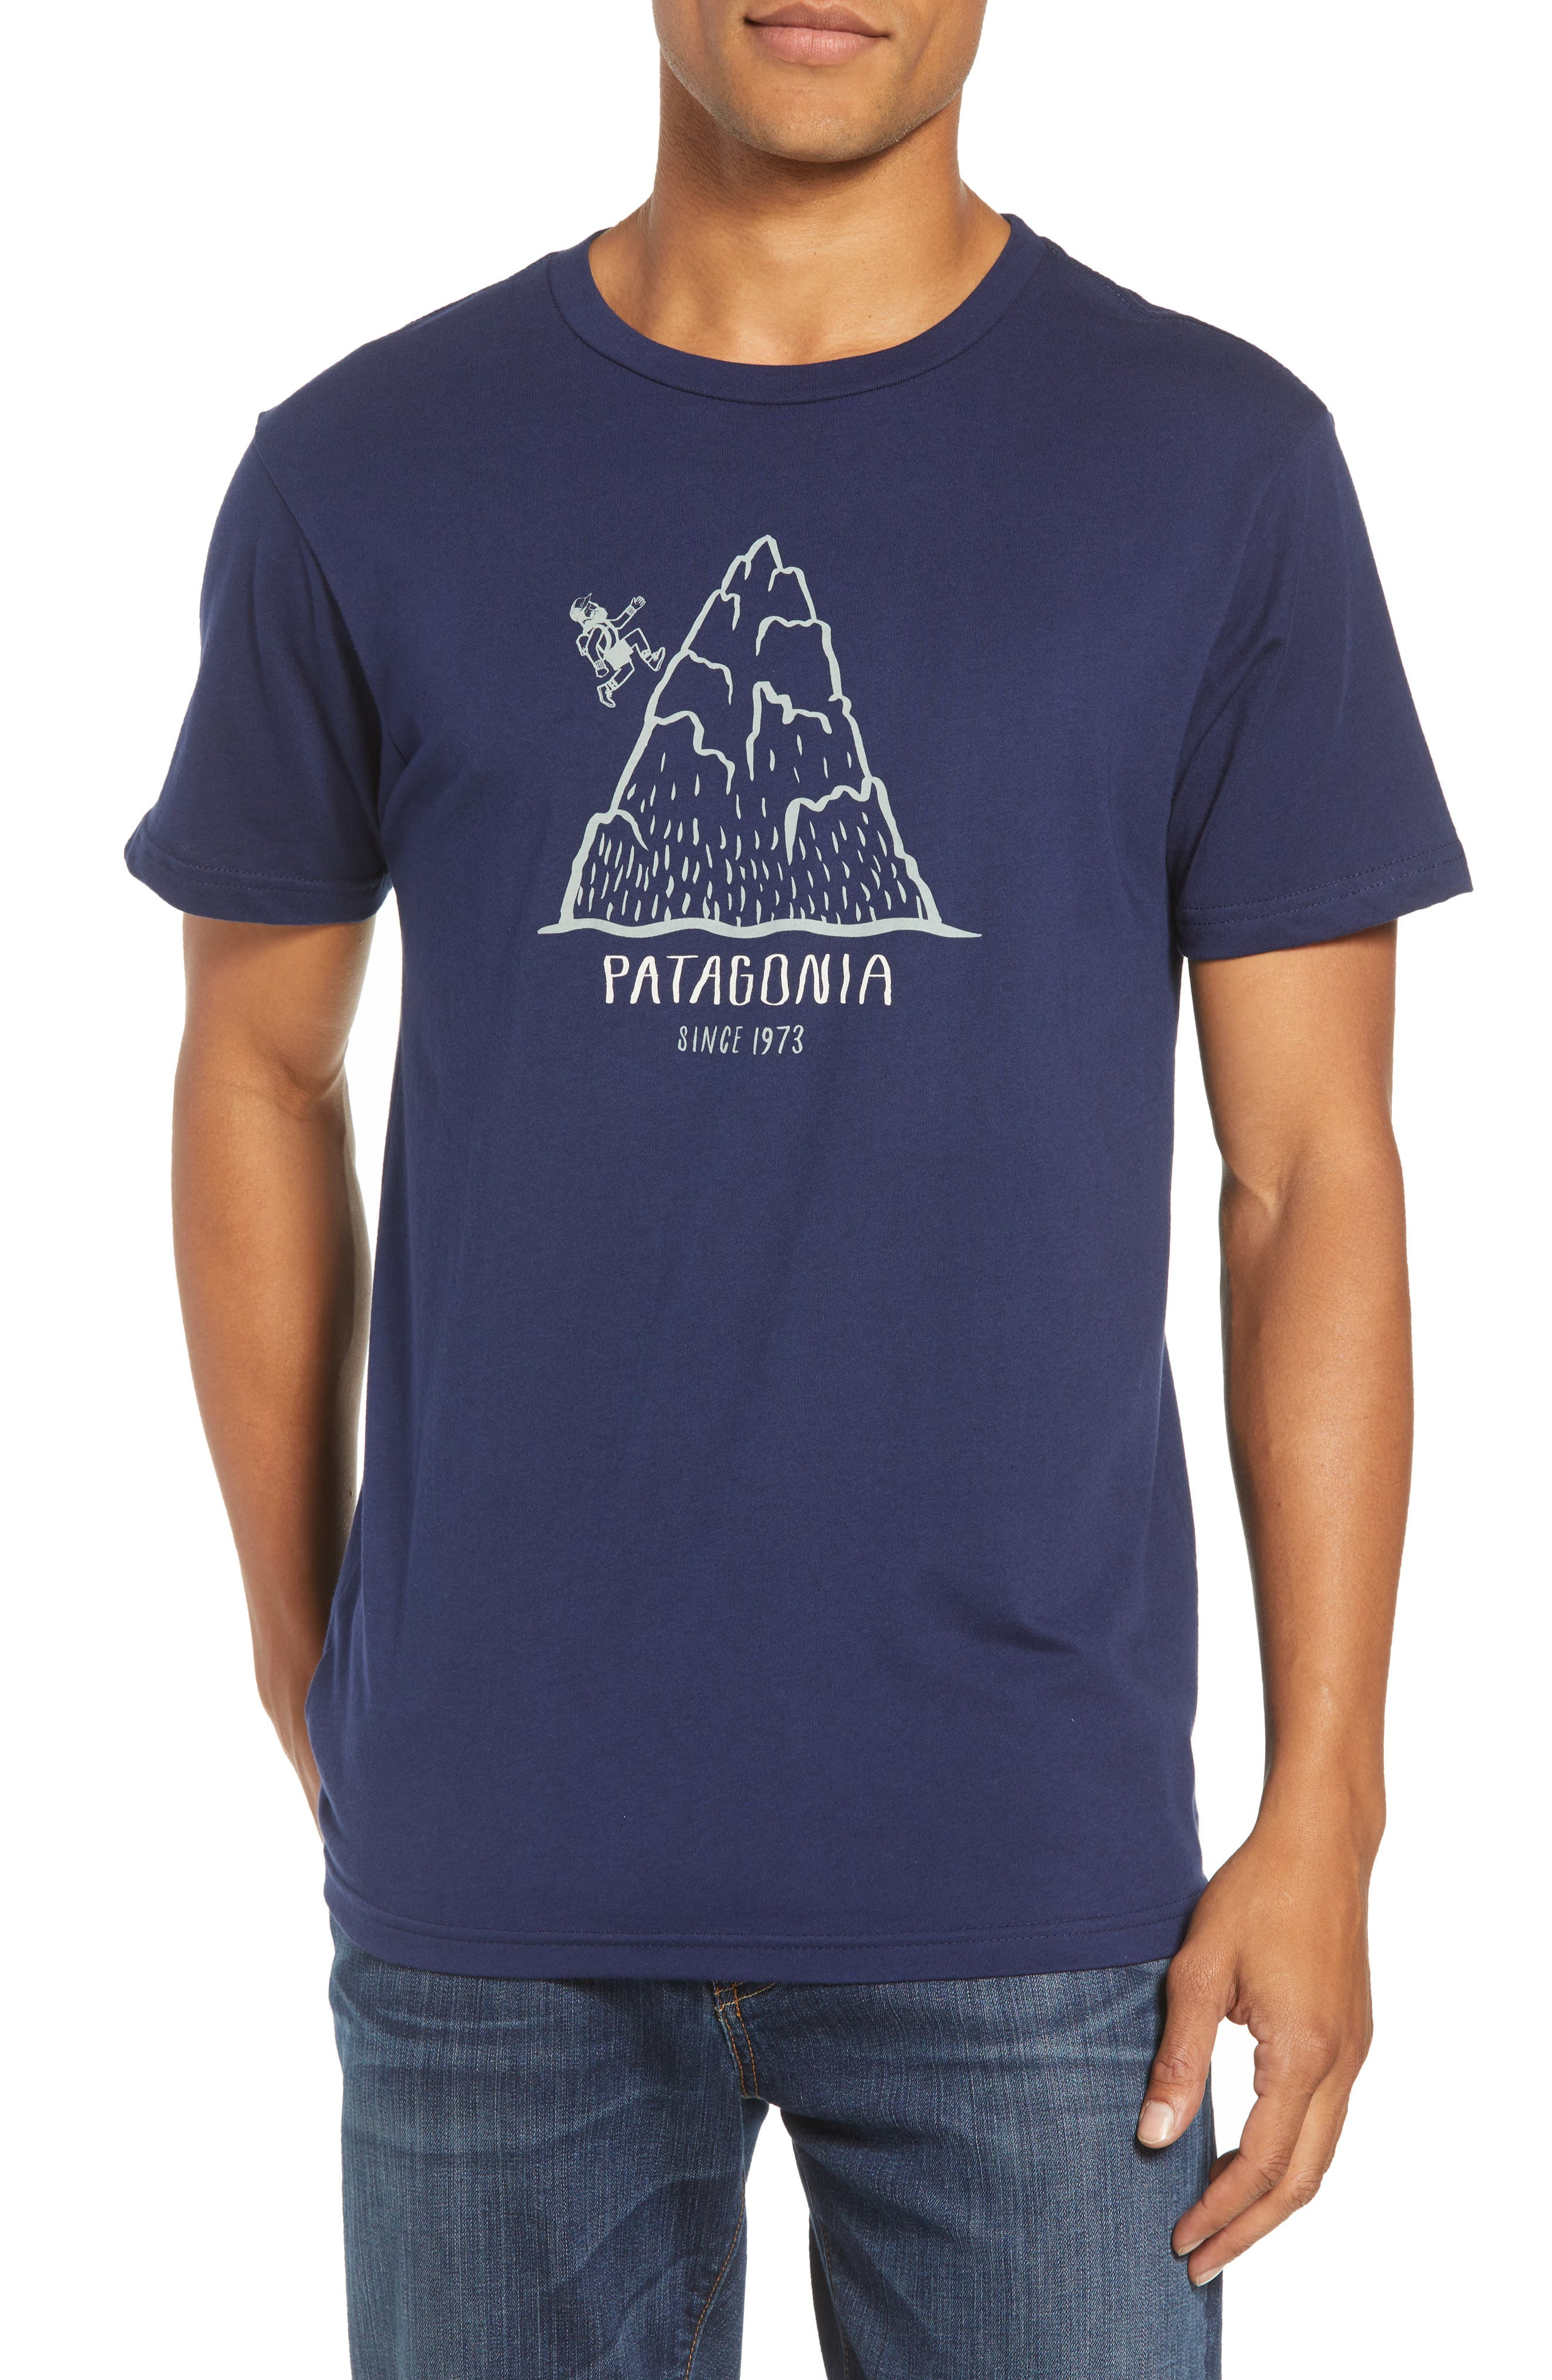 Hoofin It Organic Cotton Graphic T-Shirt,                             Main thumbnail 1, color,                             CLASSIC NAVY